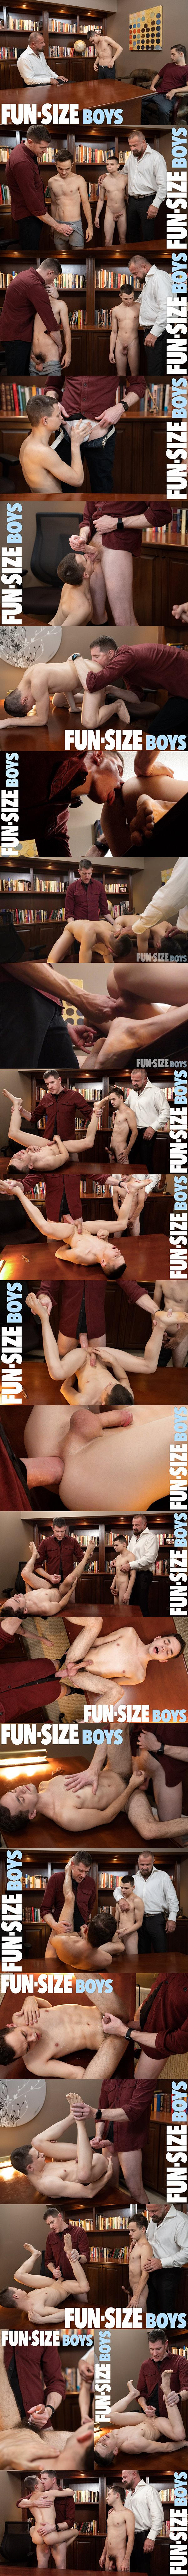 Felix Kamp and LeGrand Wolf bareback twink Austin Young and Marcus Rivers in an older younger scene in Fun-Pack Chapter 6 Principal's Office at Funsizeboys 01